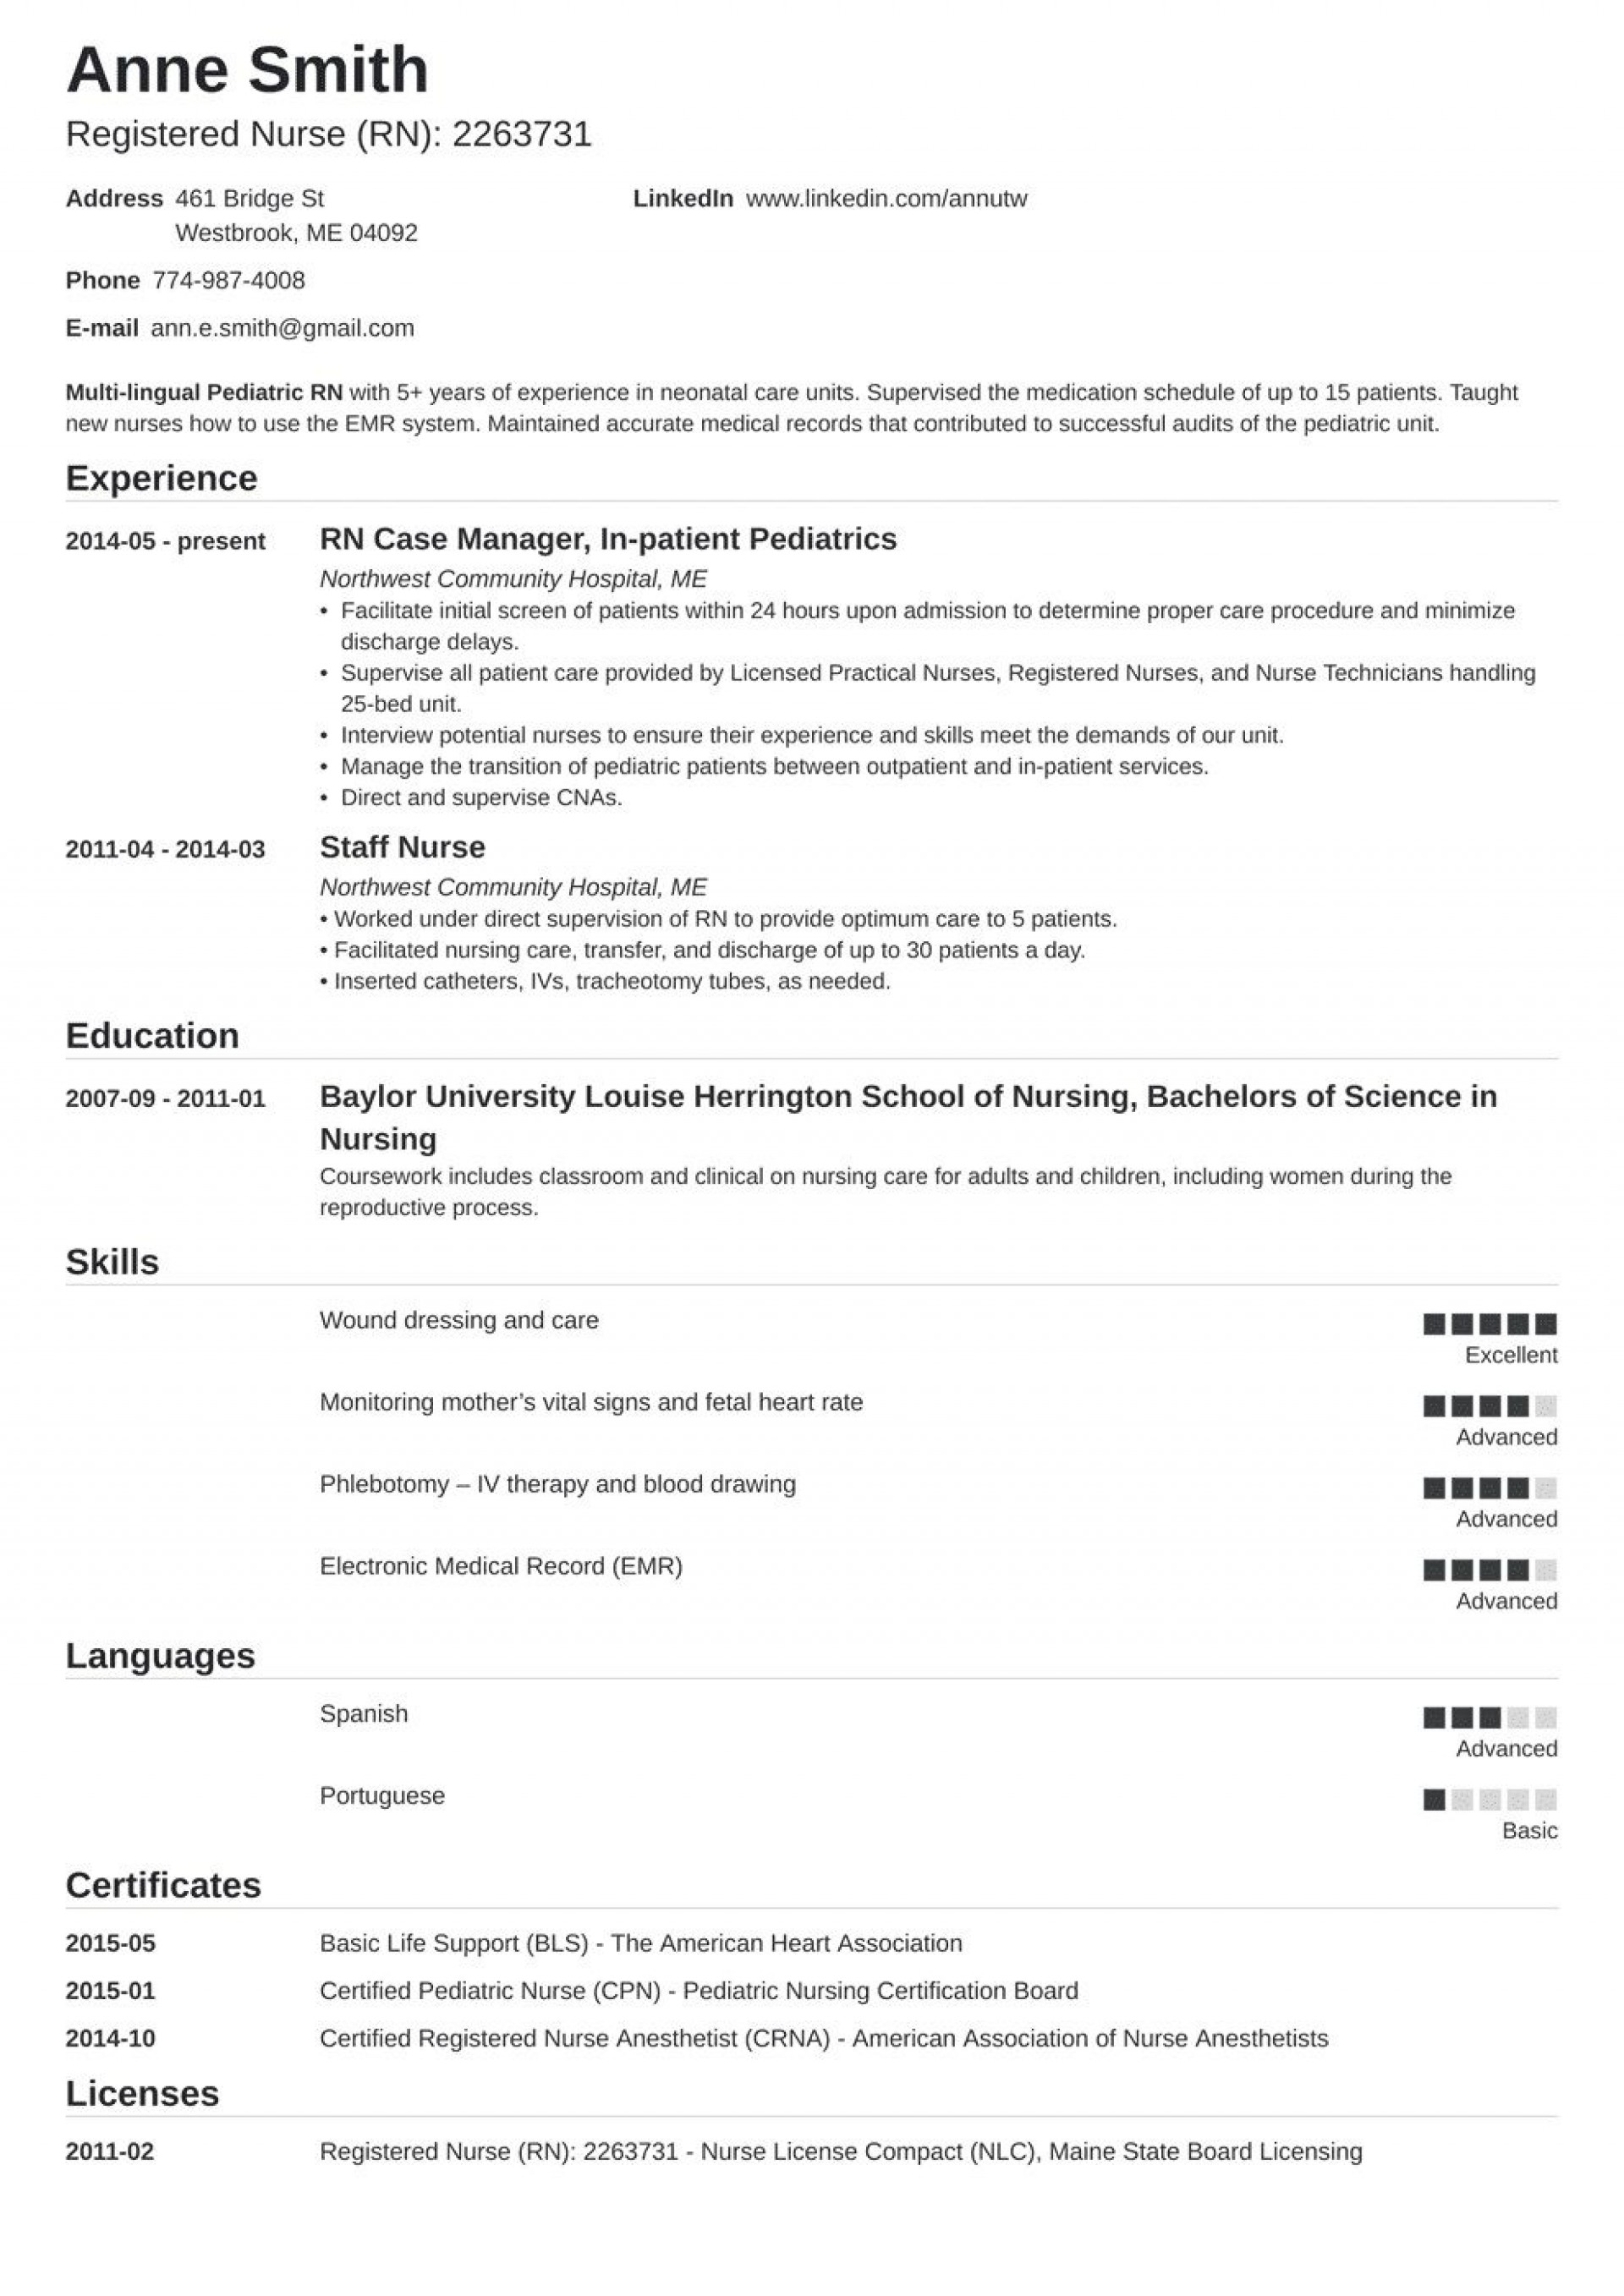 005 Awesome Nurse Resume Template Free Idea  Graduate Rn1920